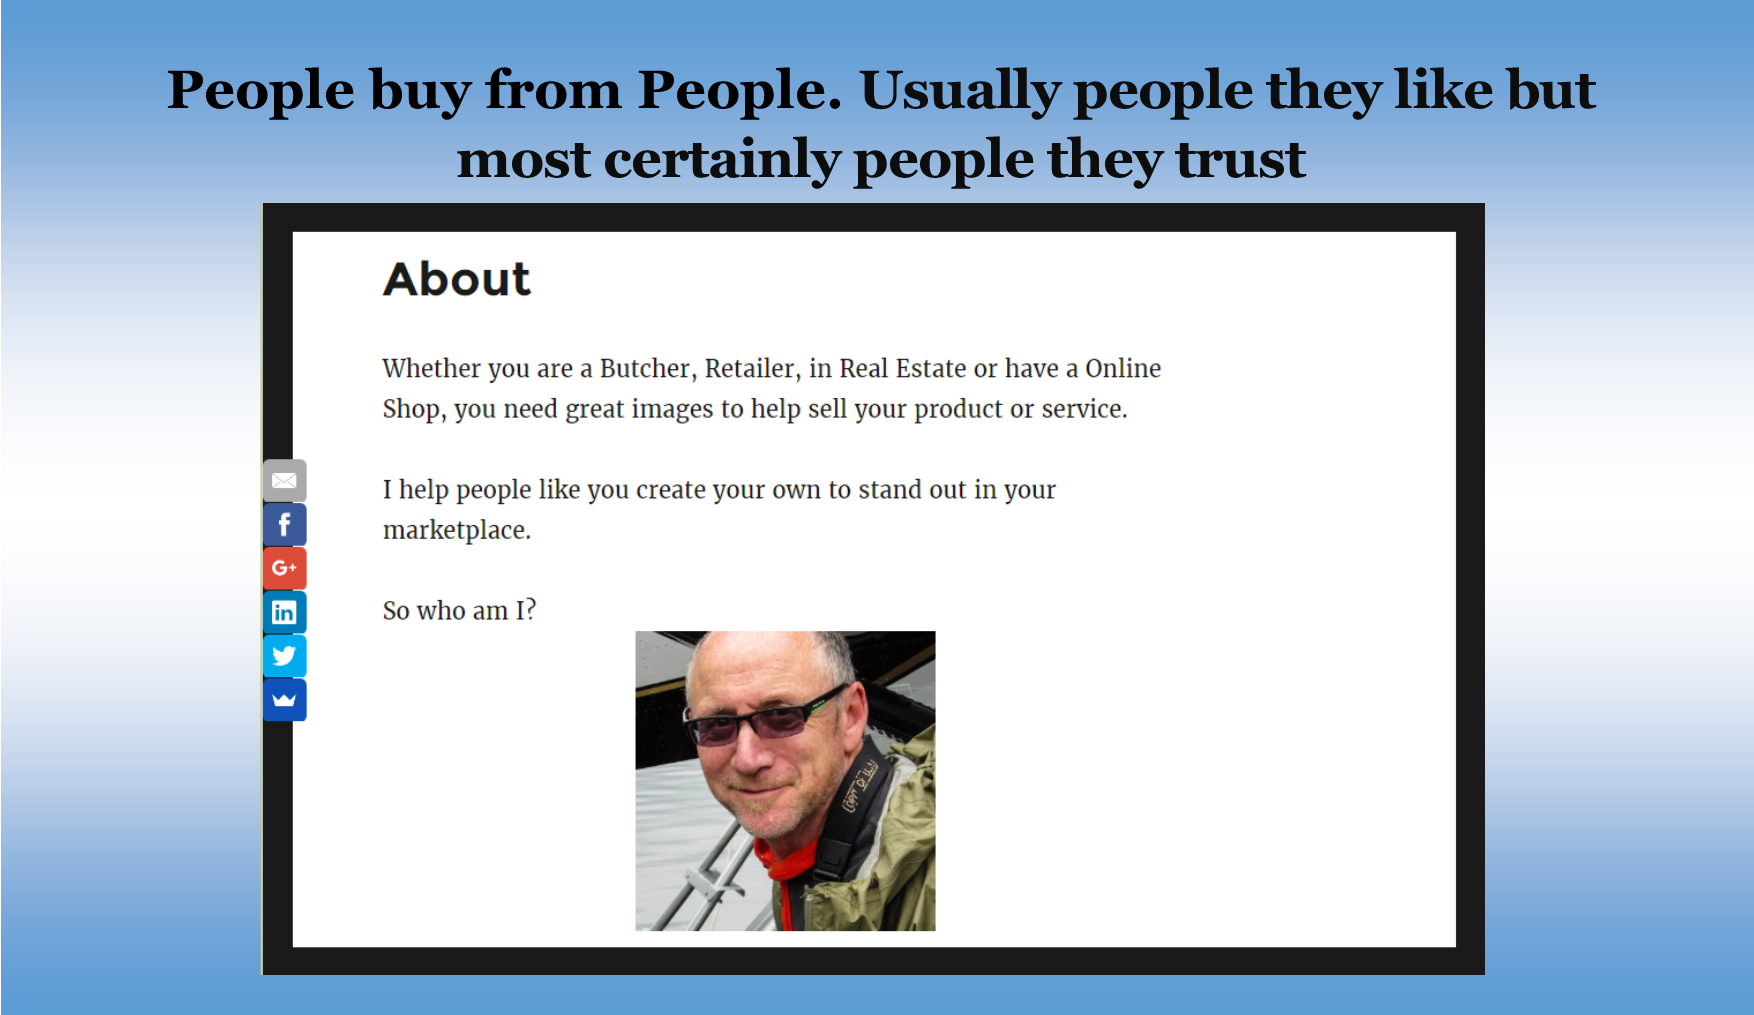 2-people-buy-from-people